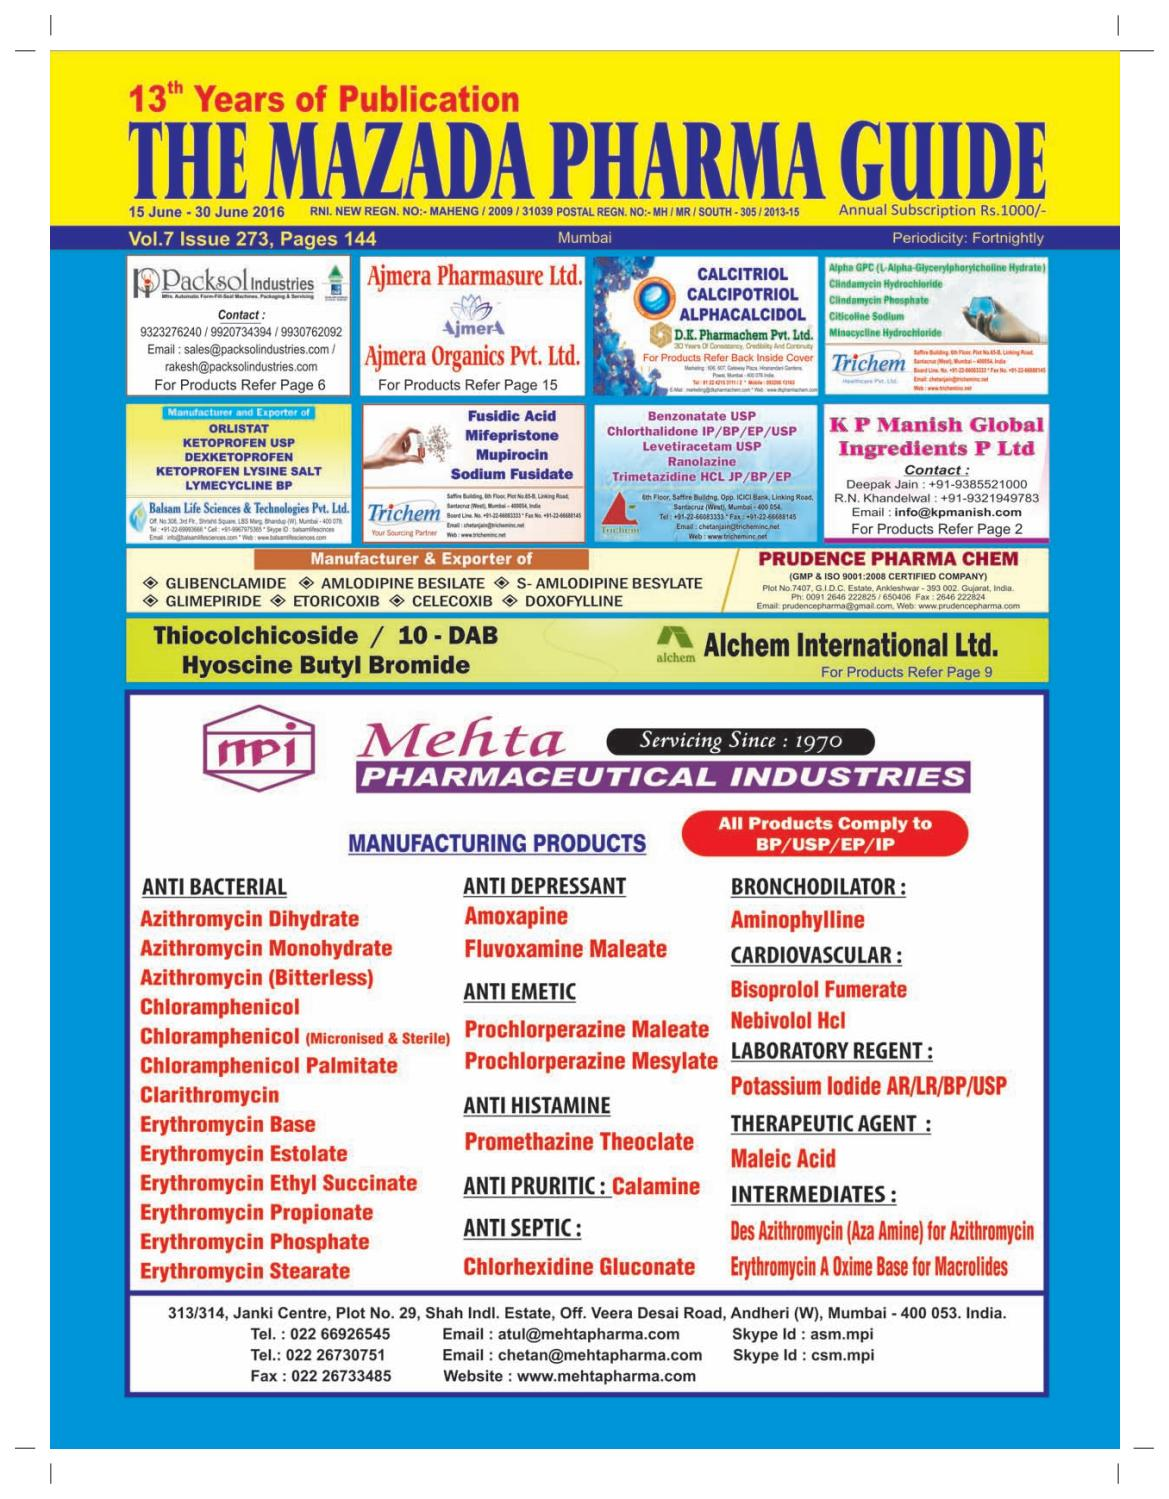 The Mazada Pharma Guide - 16th to 30th June 2016 by The Mazada